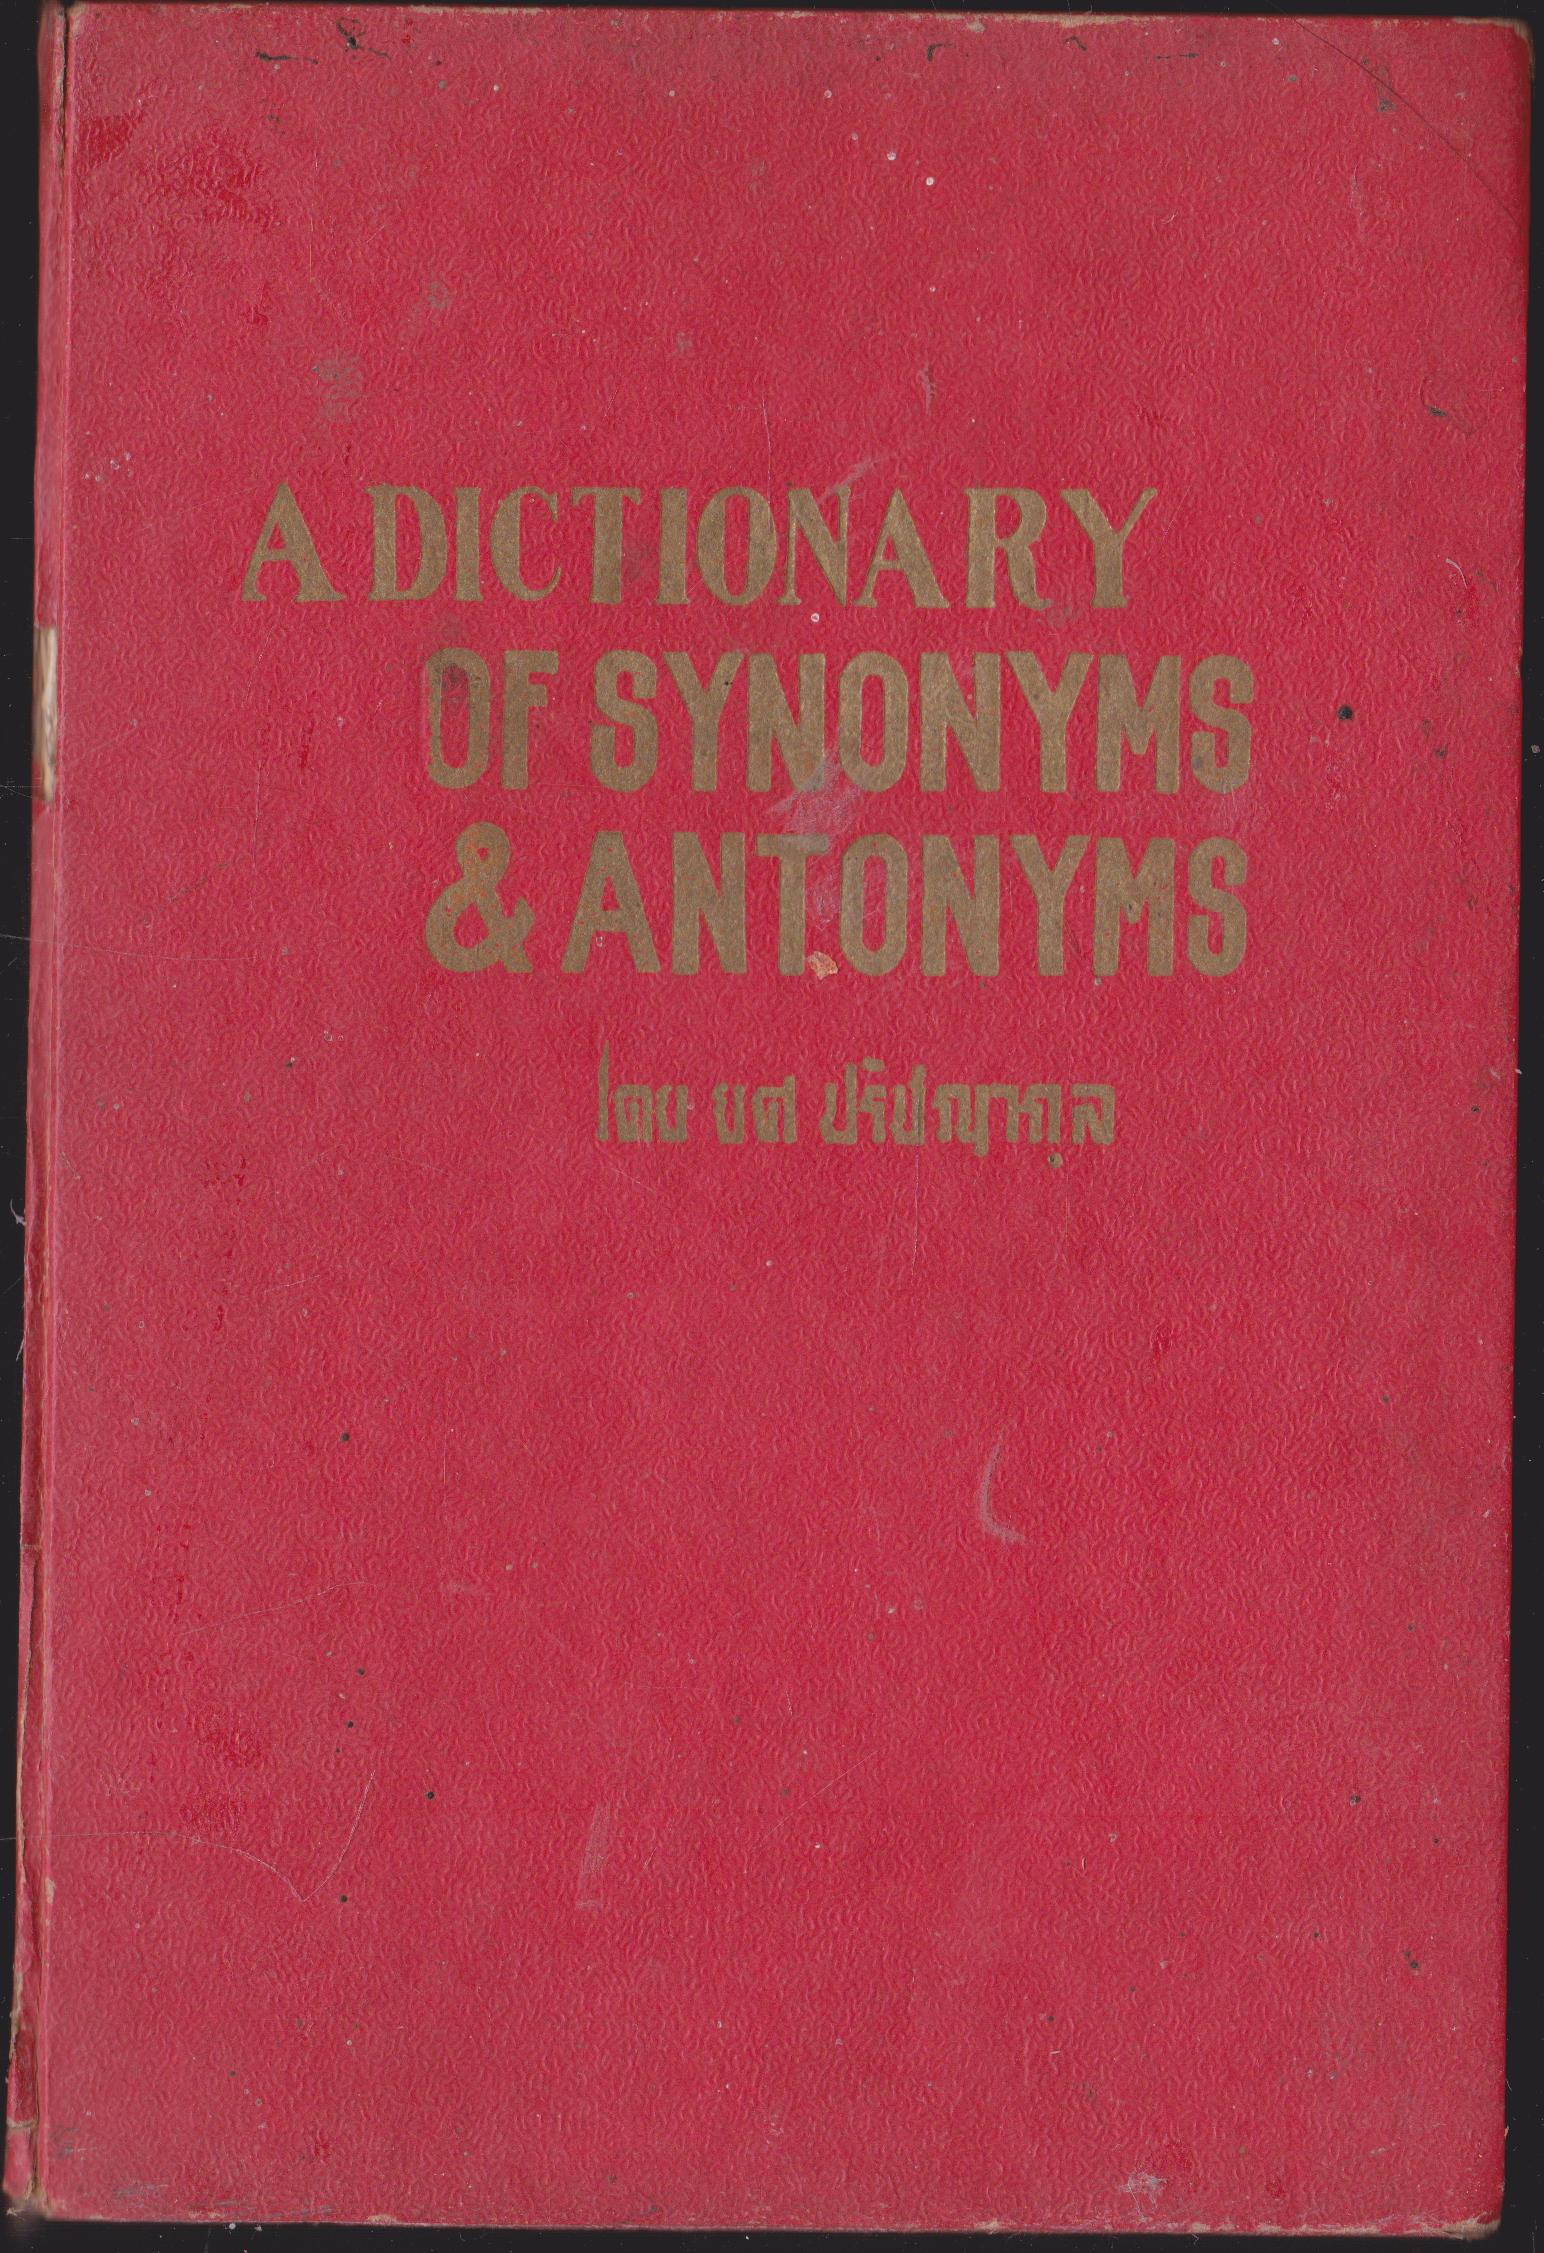 A DICTIONARY OF SYNONYMS & ANTONYMS